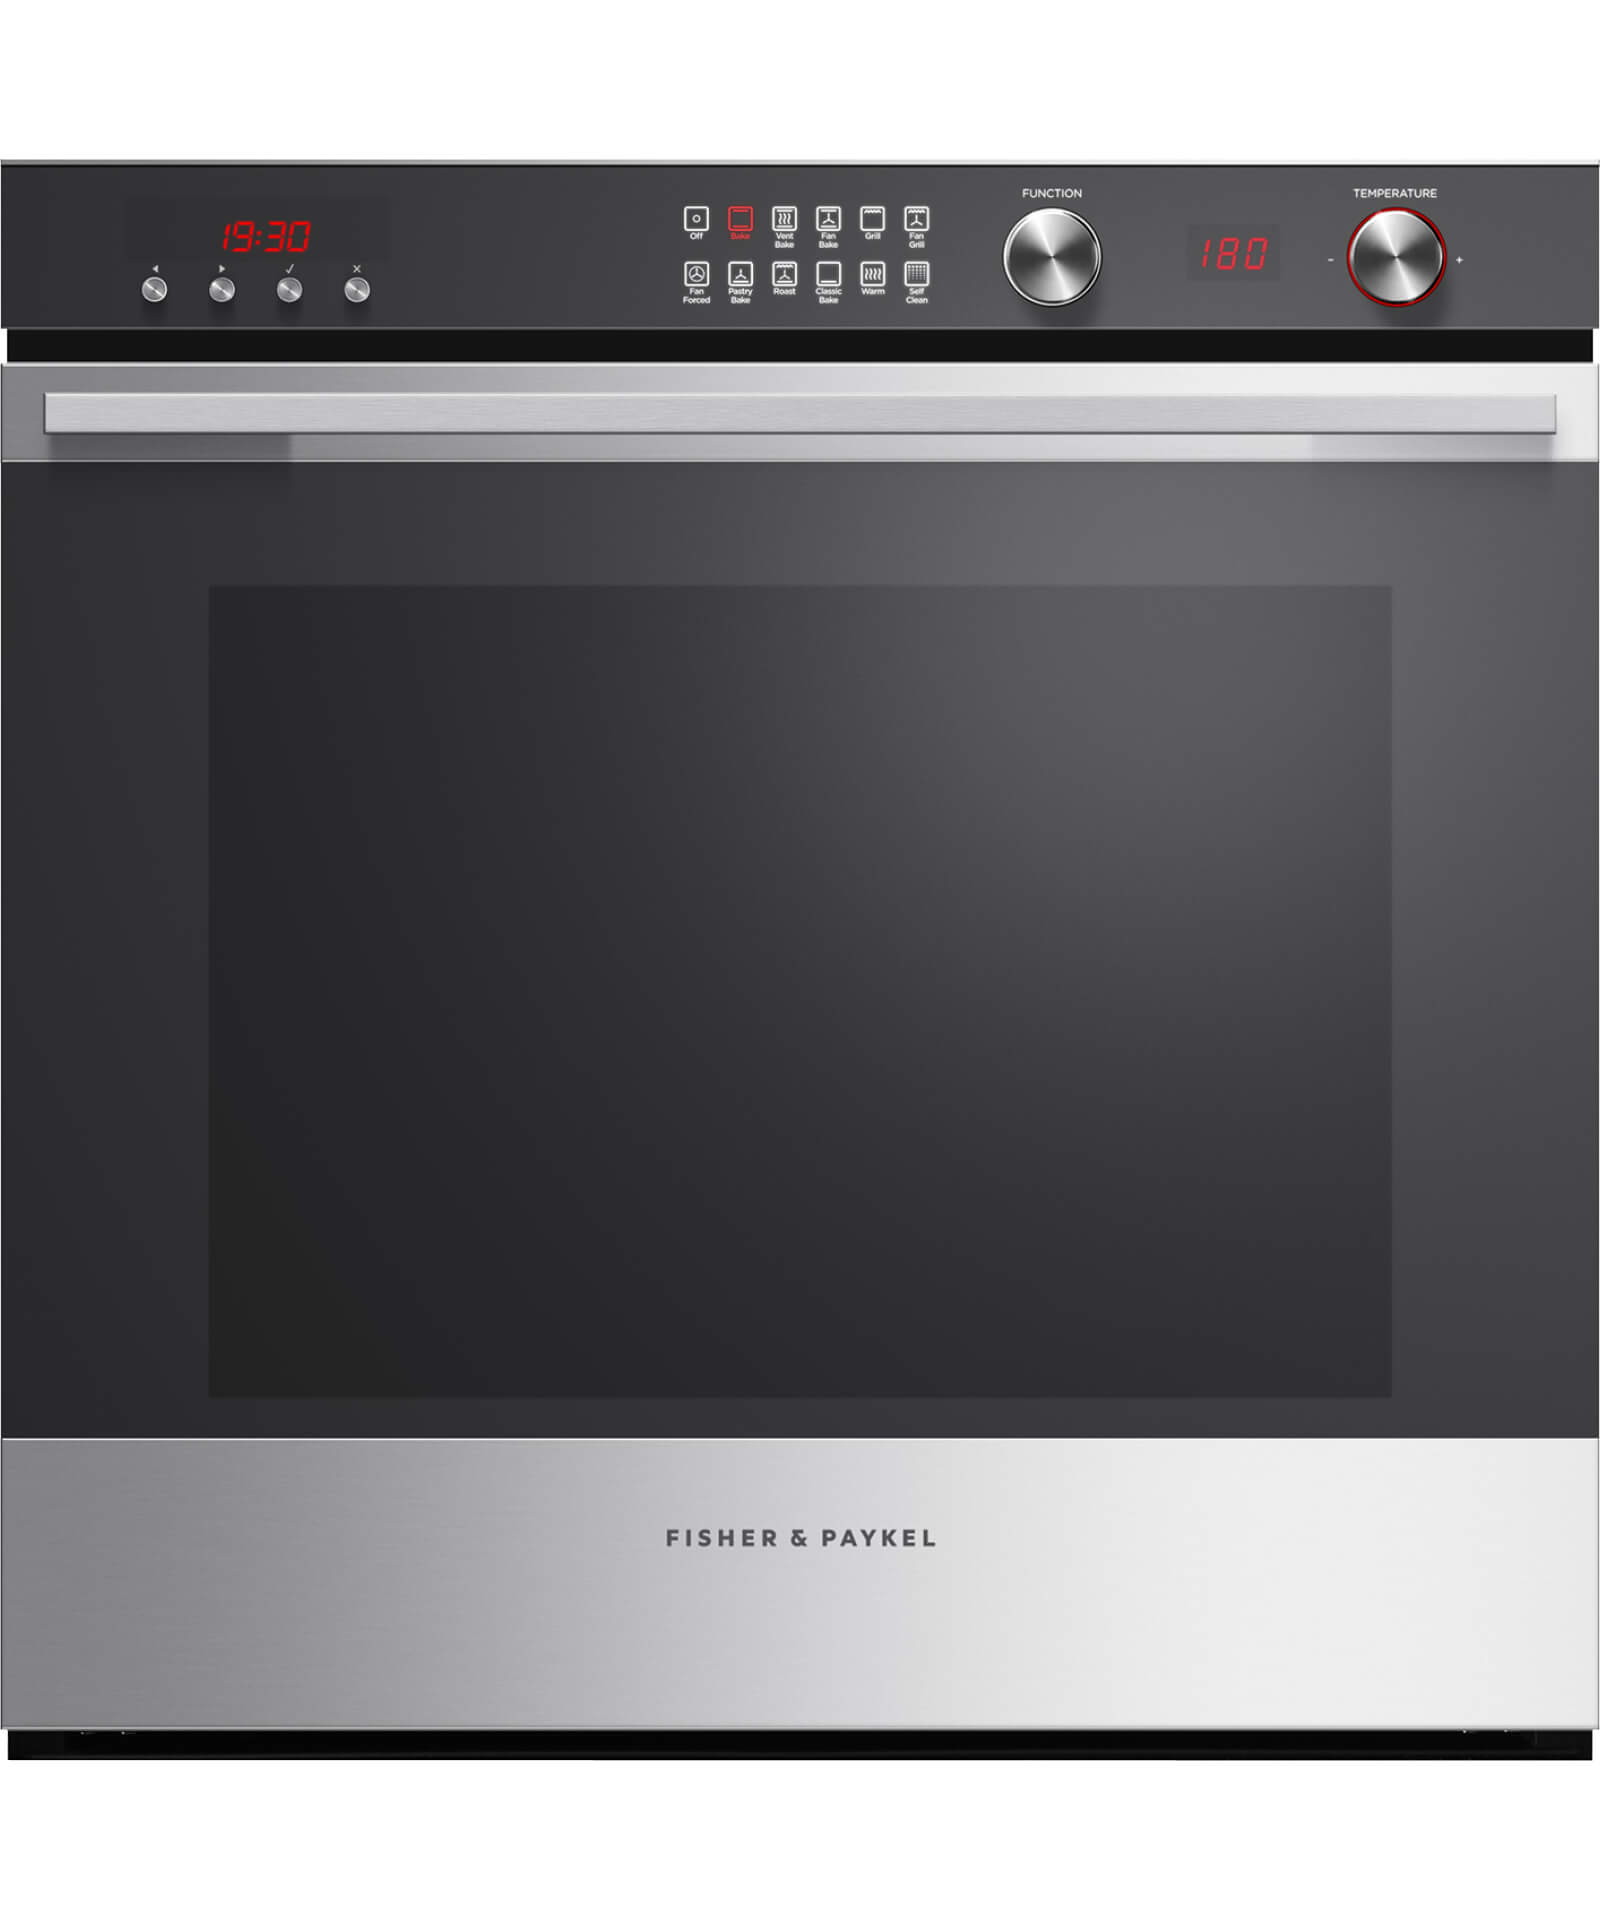 OB60SL11DEPX1 - 60cm 11 Function Pyrolytic Built-in Oven - 90L Gross Capacity - 81481